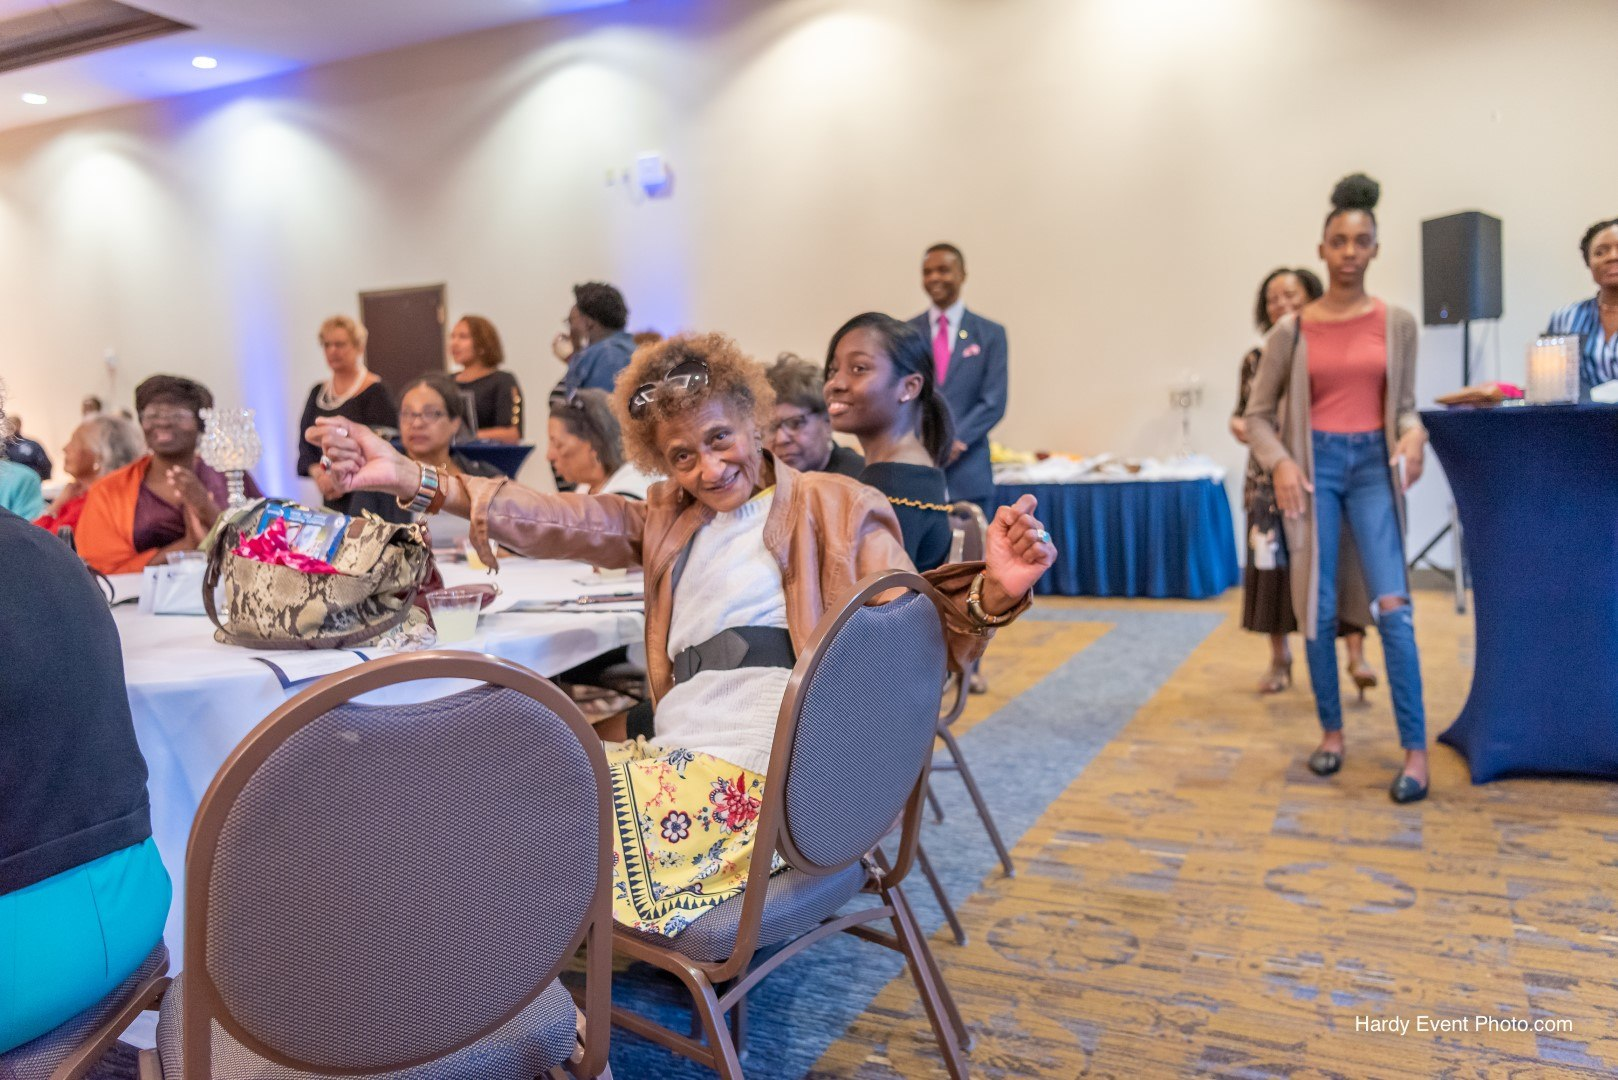 Professional Event Photography by www.HardyEventPhoto.com | (336) 303-8368 | We Print On-Site! | @HardyEventPhoto | #HardyEventPhoto